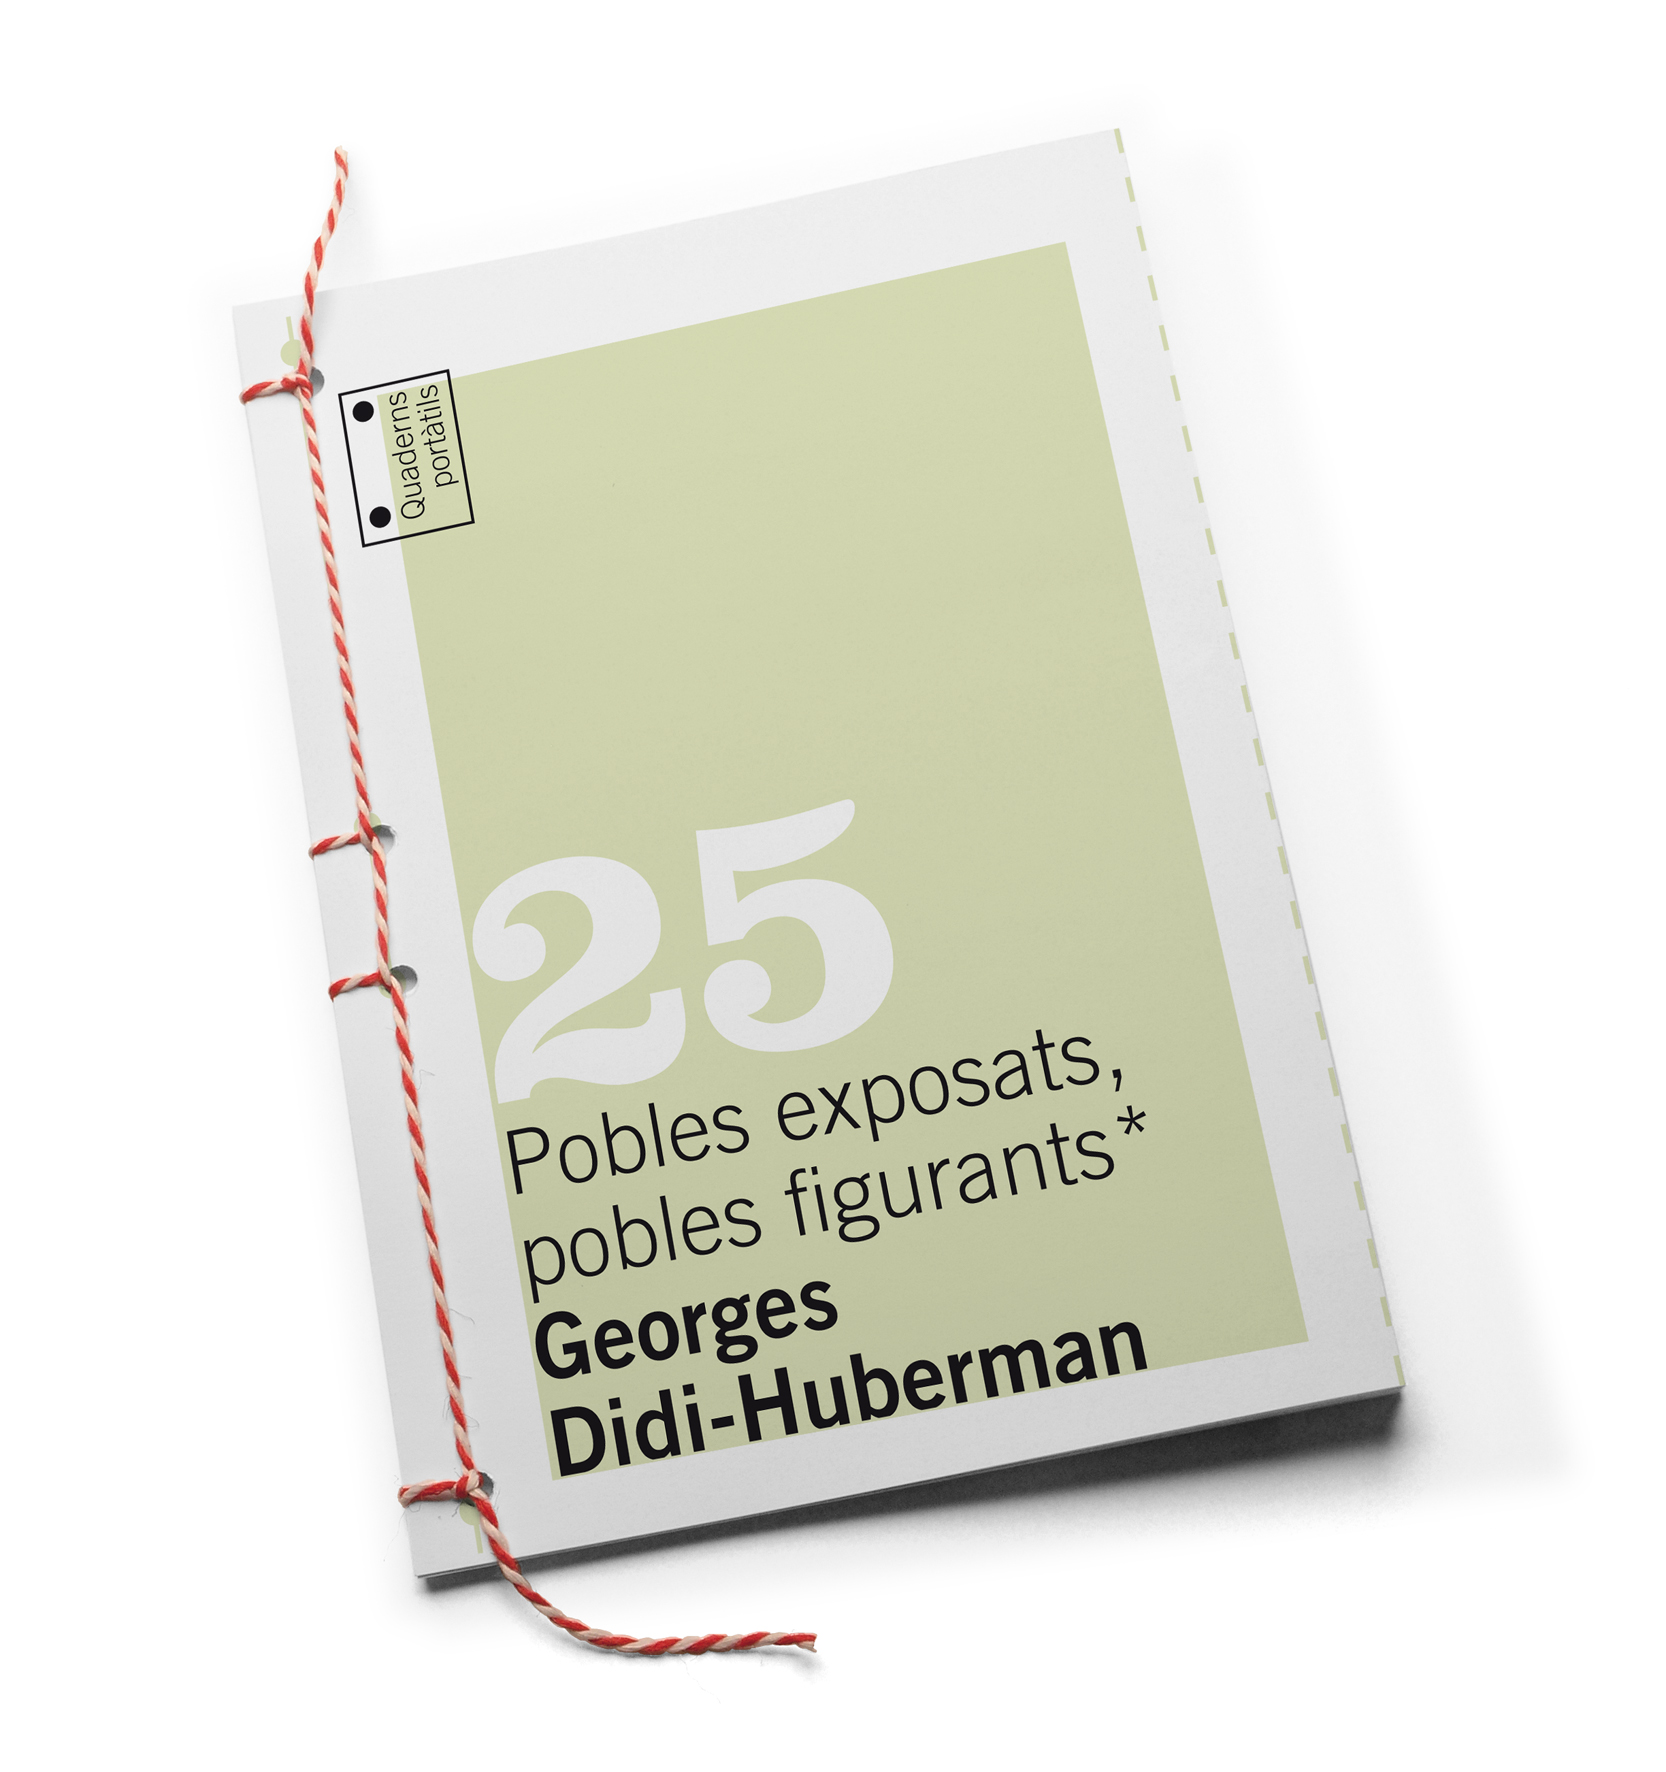 "Georges Didi-Huberman ""Pobles exposats, pobles figurants*"", 2011"